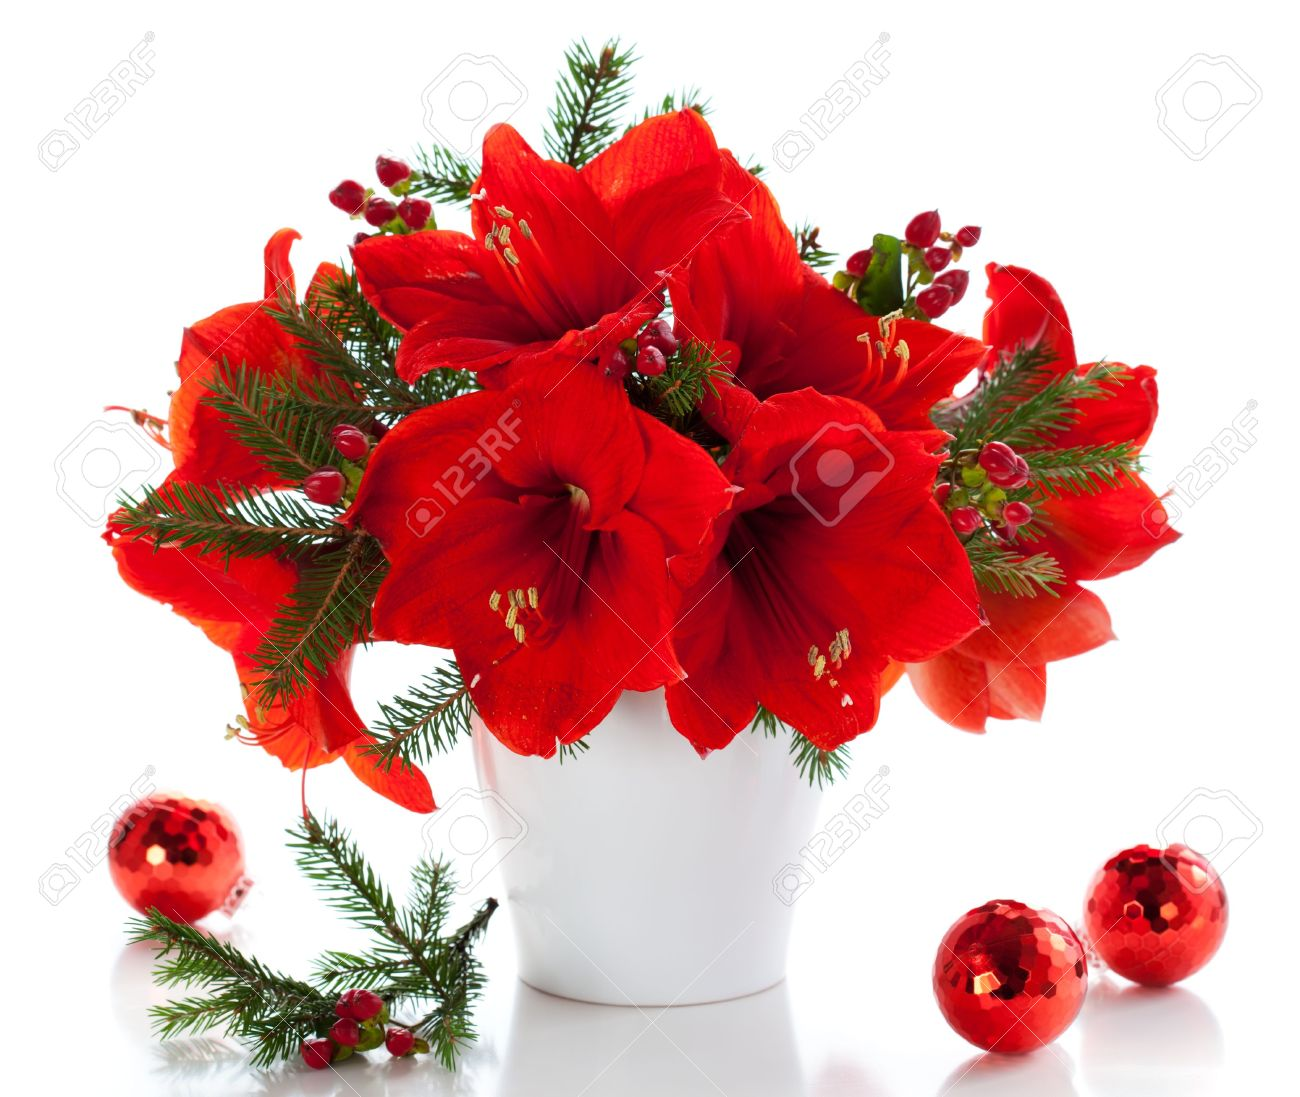 Flower arrangement stock photos royalty free flower arrangement images red amaryllis in vase with christmas decorations izmirmasajfo